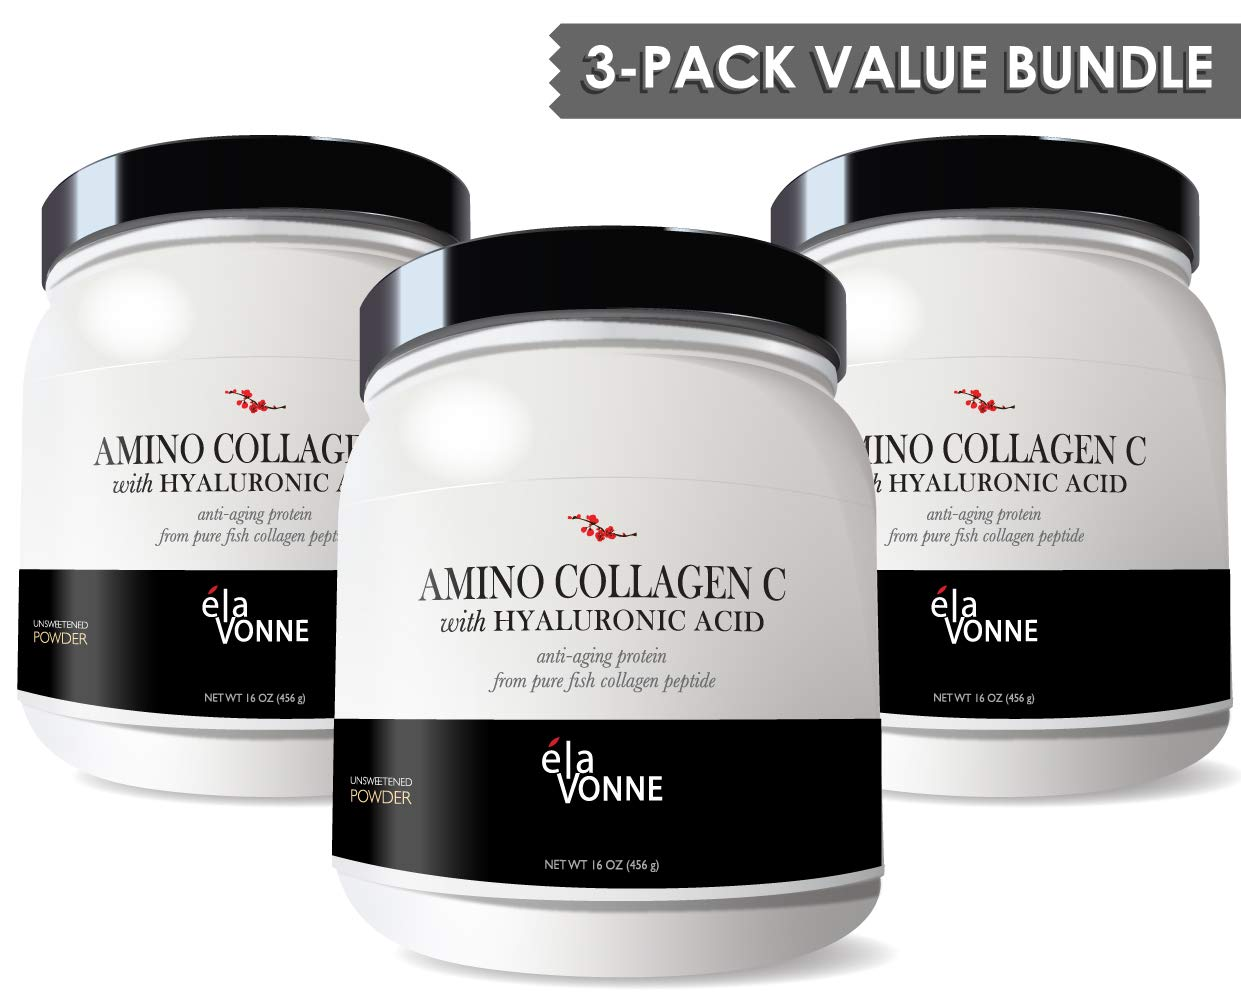 Amino Collagen C - Collagen Peptide Powder (3 Pack/180 Servings) - Pure Fish Protein with Hyaluronic Acid. No Sugar. No Odor. No Flavor. by ELAVONNE